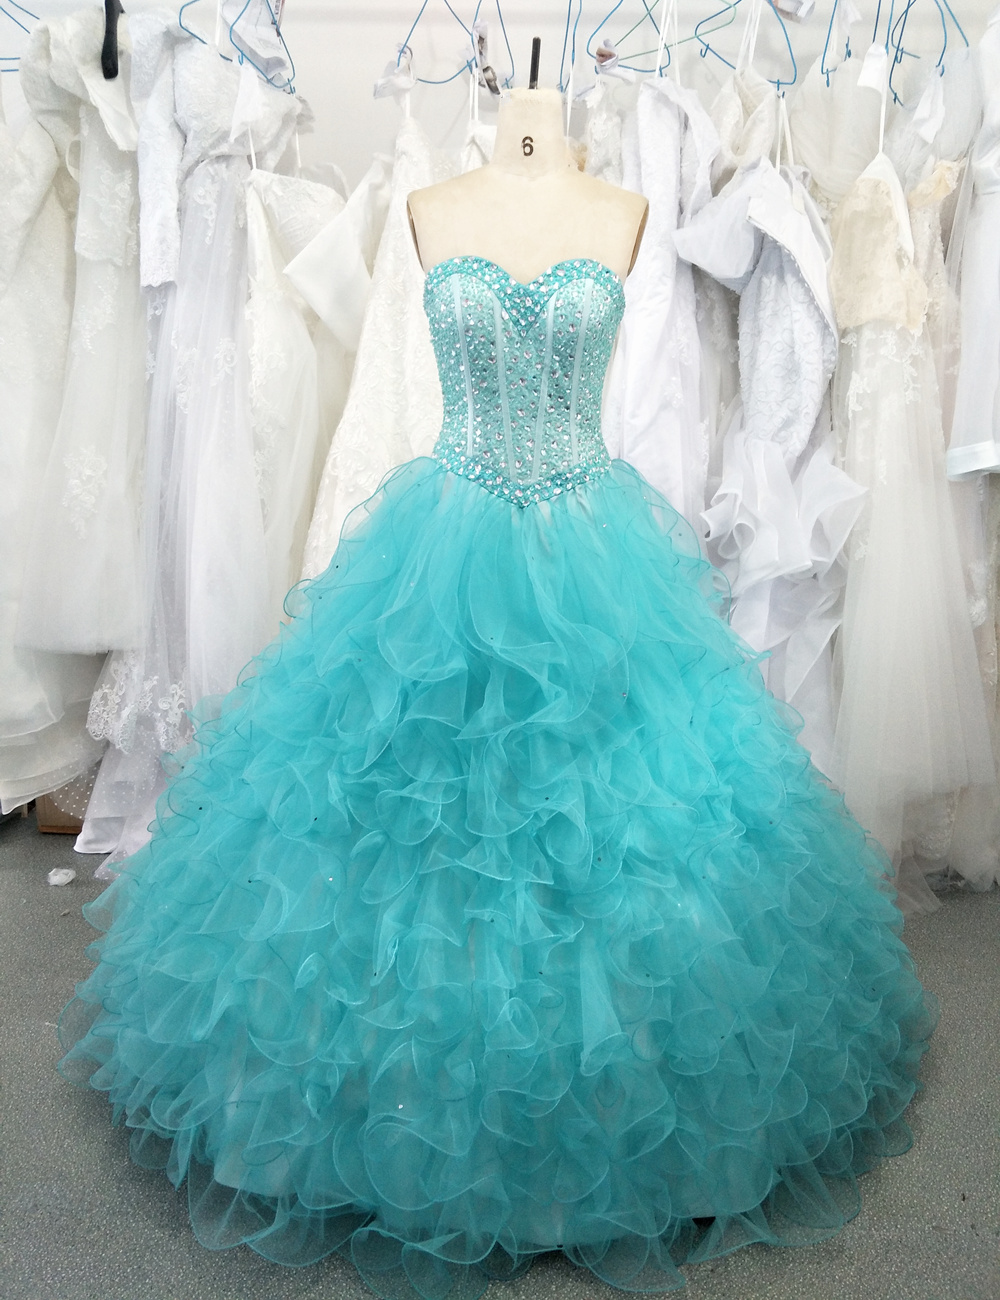 8f4cd1a083 Puffy quinceanera vestidos 2018 sweetheart dulce 16 vestidos de bola vestido  de quinceañera 15 años cumpleaños